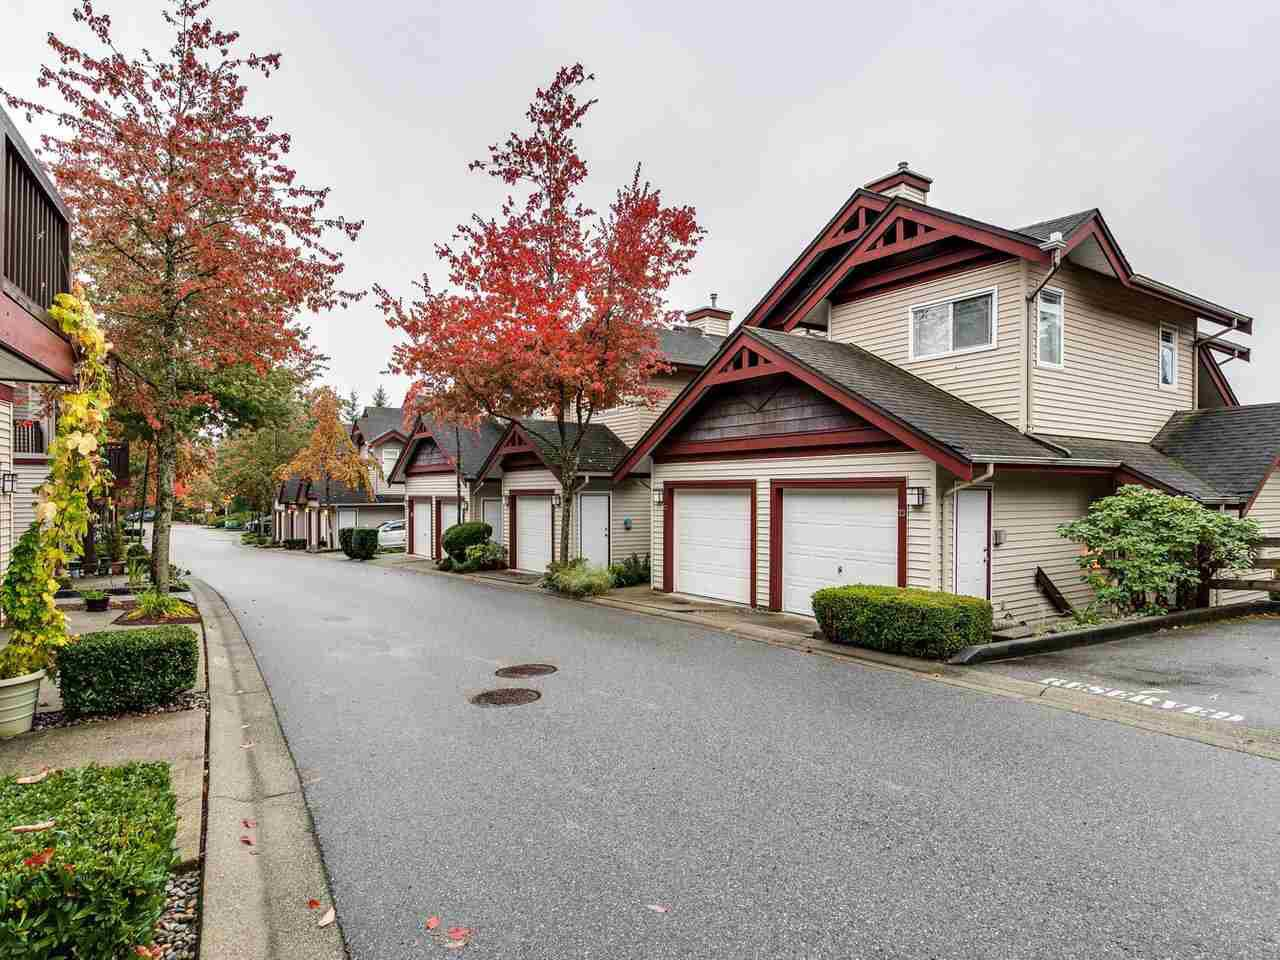 """Main Photo: 23 15 FOREST PARK Way in Port Moody: Heritage Woods PM Townhouse for sale in """"DISCOVERY RIDGE"""" : MLS®# R2411908"""